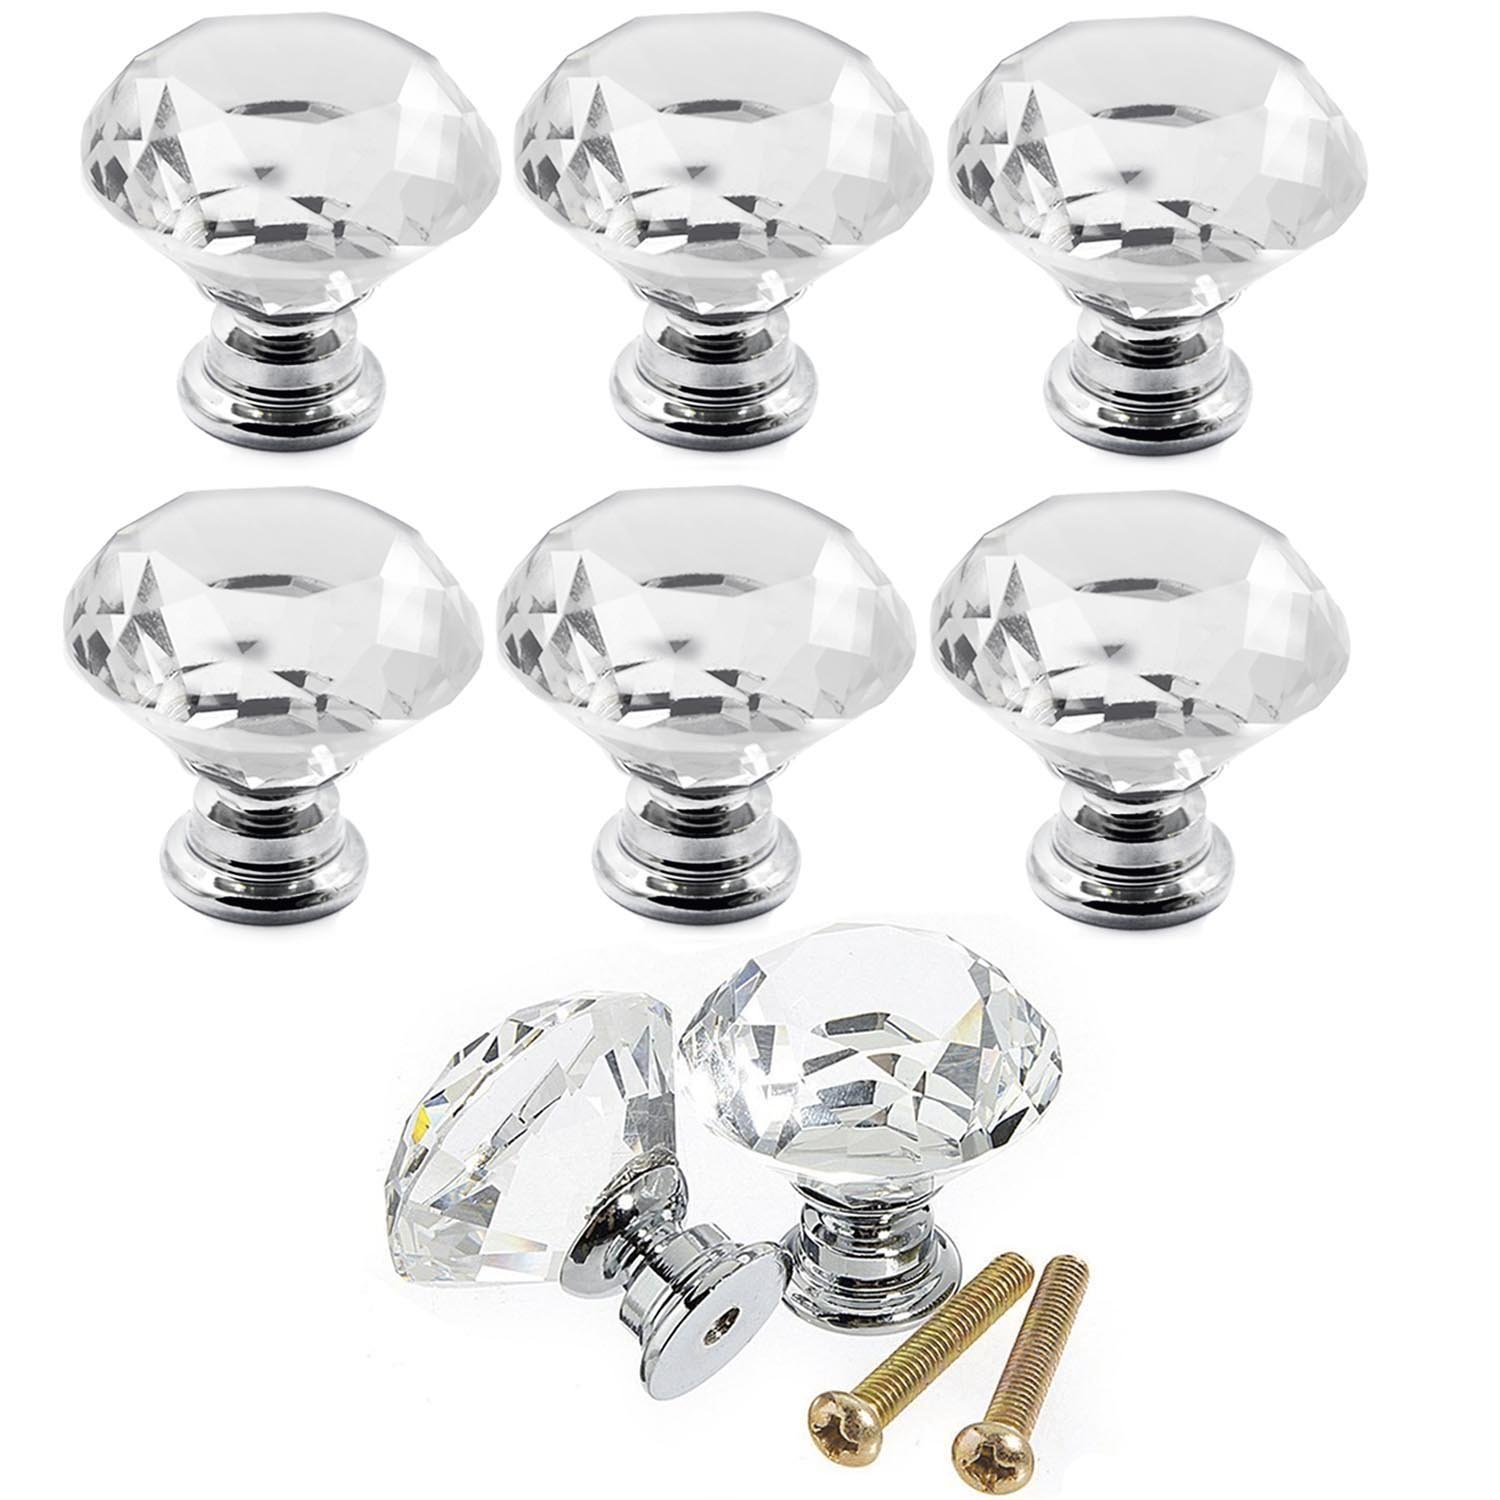 Boxcute 10x 30 mm Diamond Crystal Moebe Lknoepfe Furniture Handle Furniture Knob Glass Door Cupboard Knobs